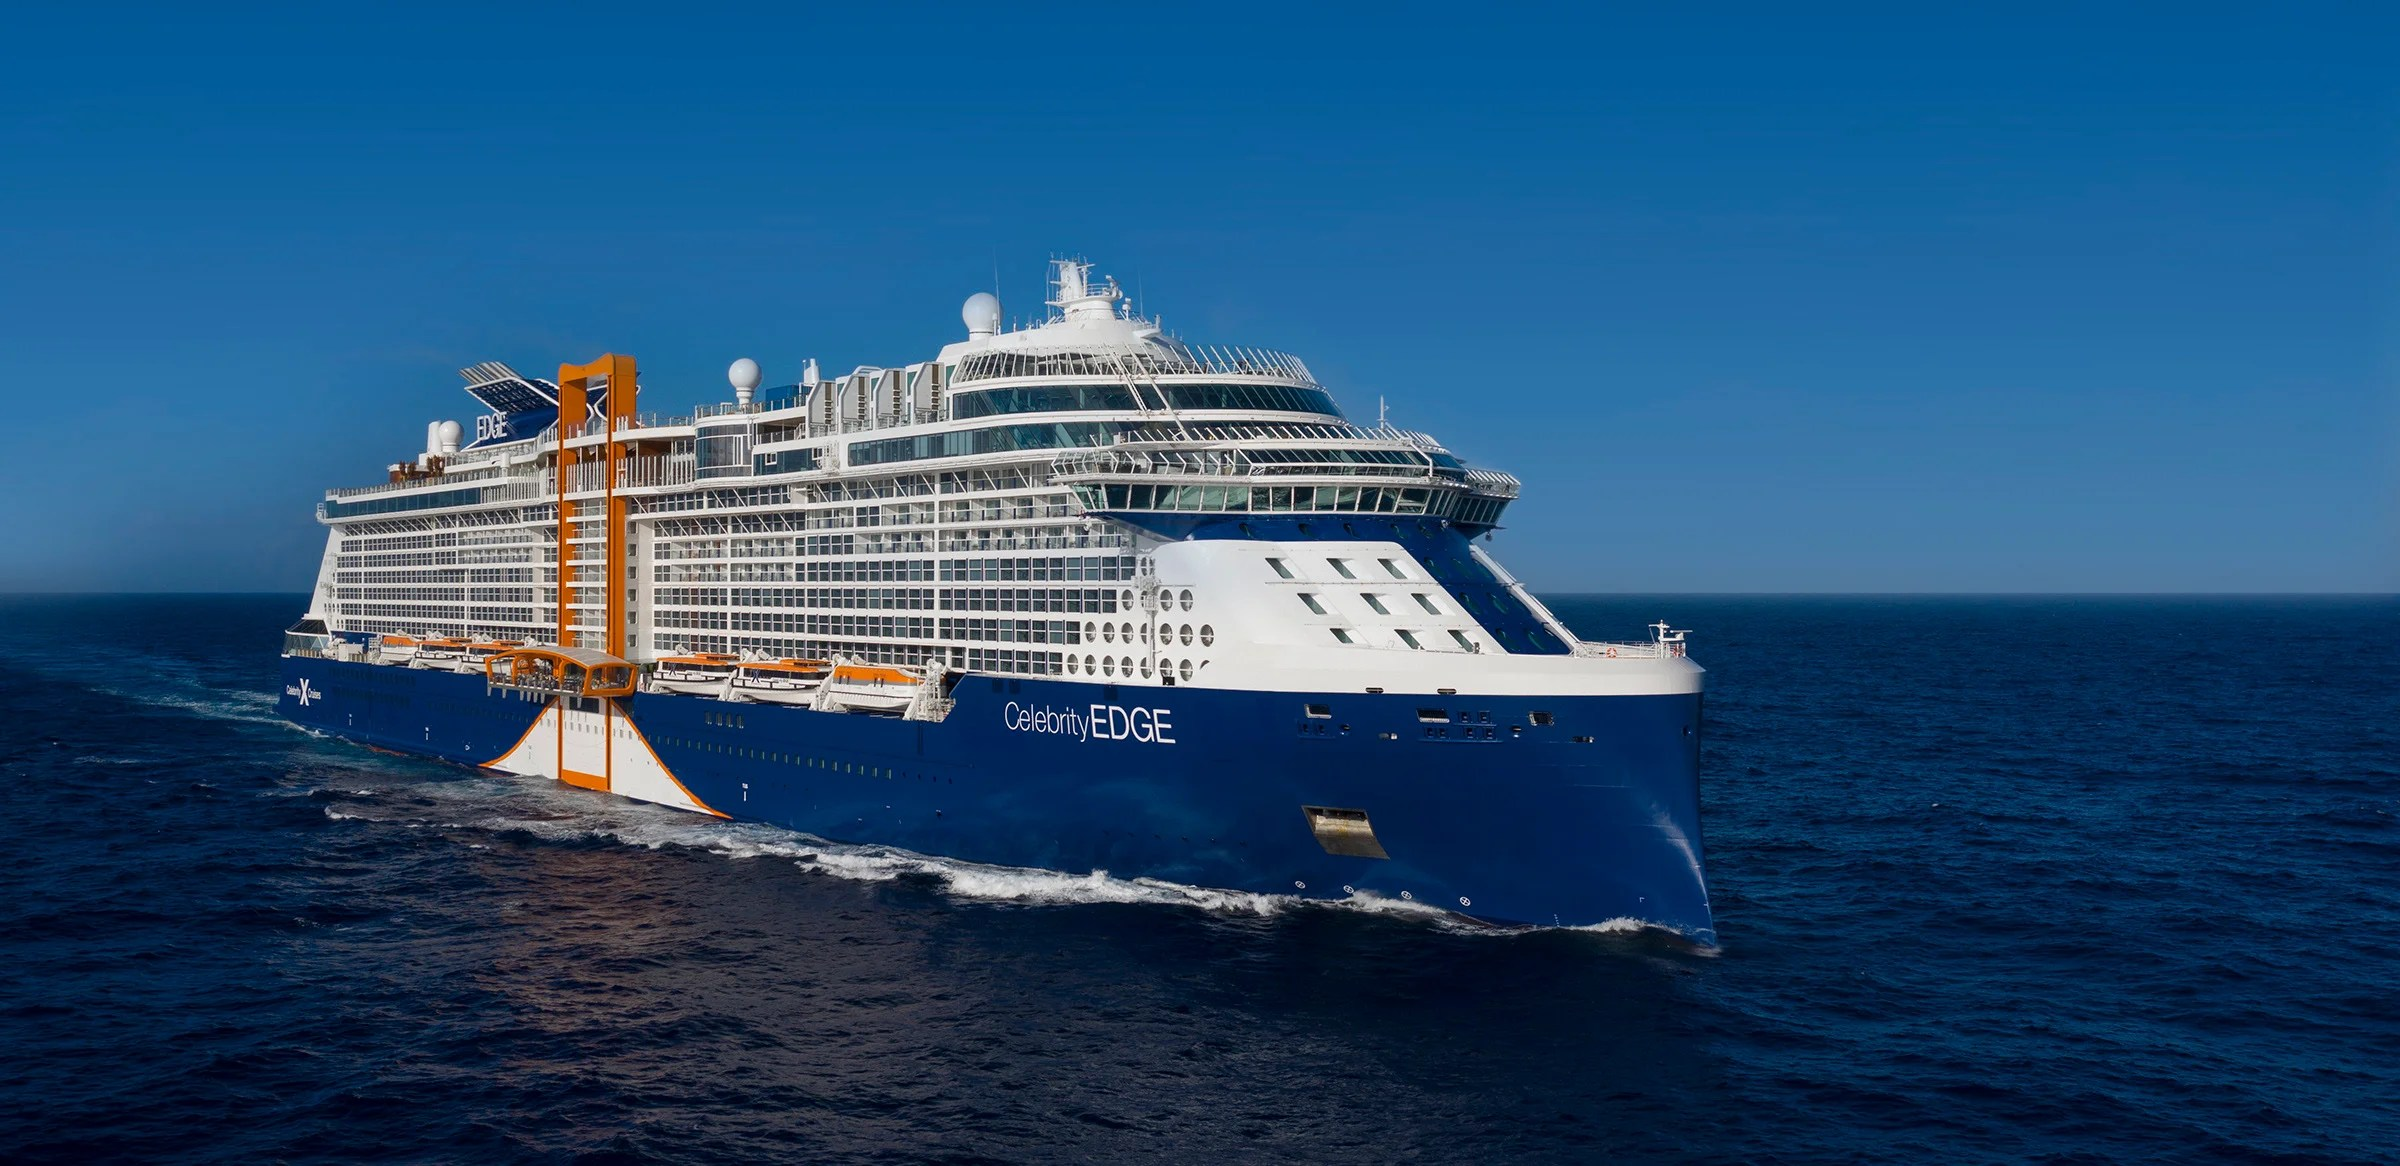 Get up to 15,000 points or cash back on cruises with new targeted Amex Offers